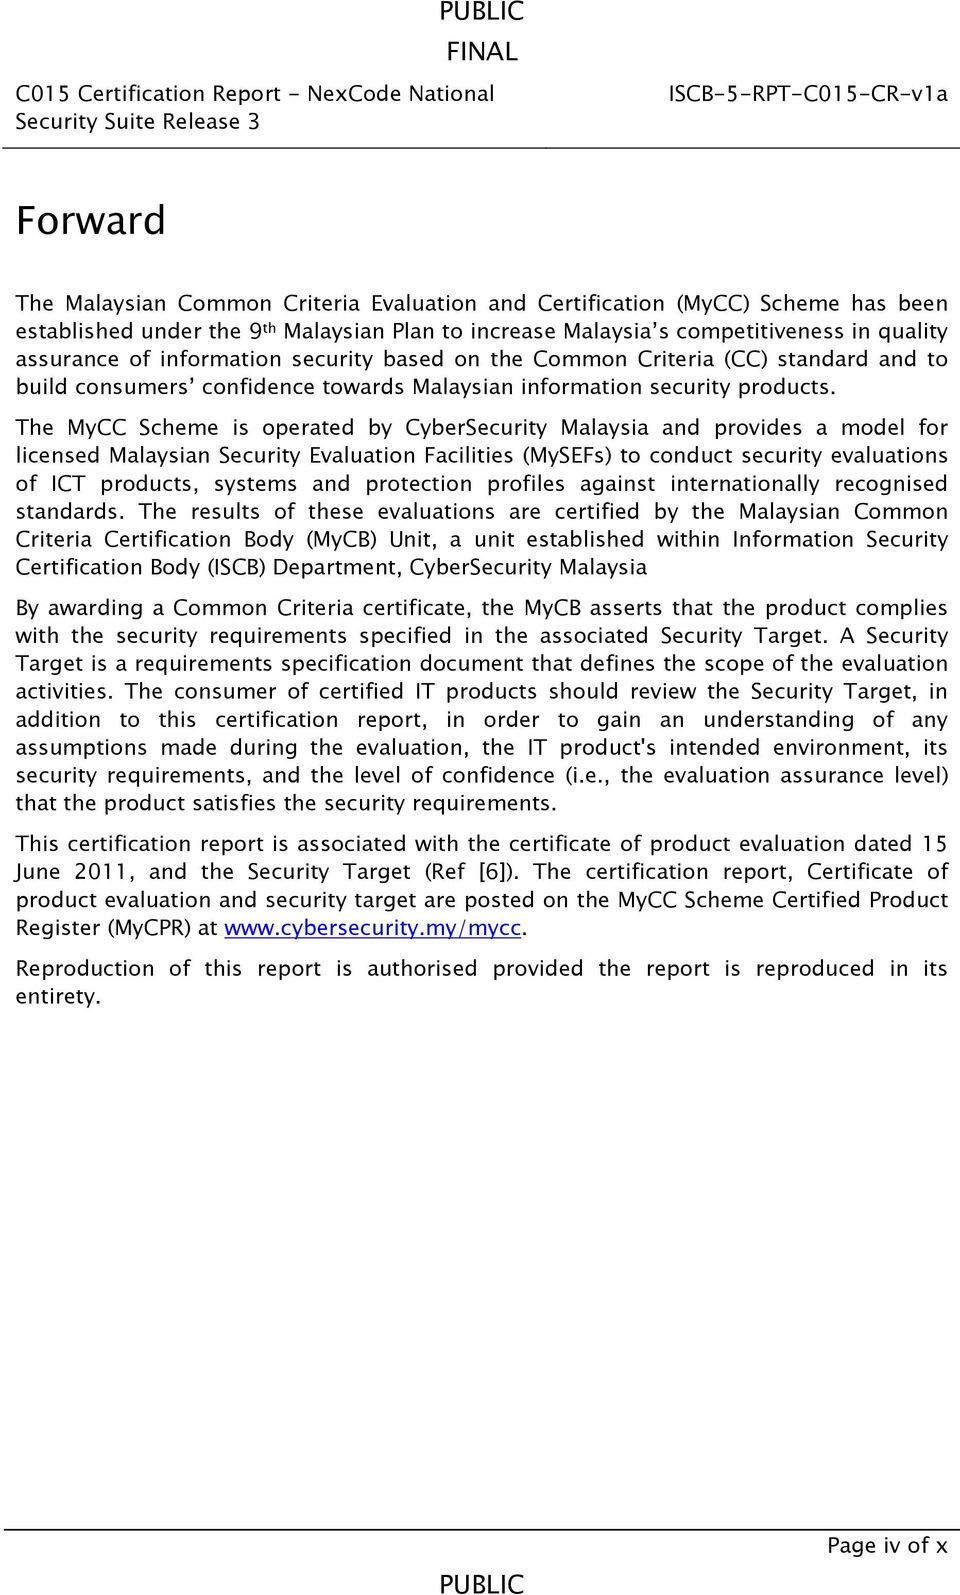 The MyCC Scheme is operated by CyberSecurity Malaysia and provides a model for licensed Malaysian Security Evaluation Facilities (MySEFs) to conduct security evaluations of ICT products, systems and